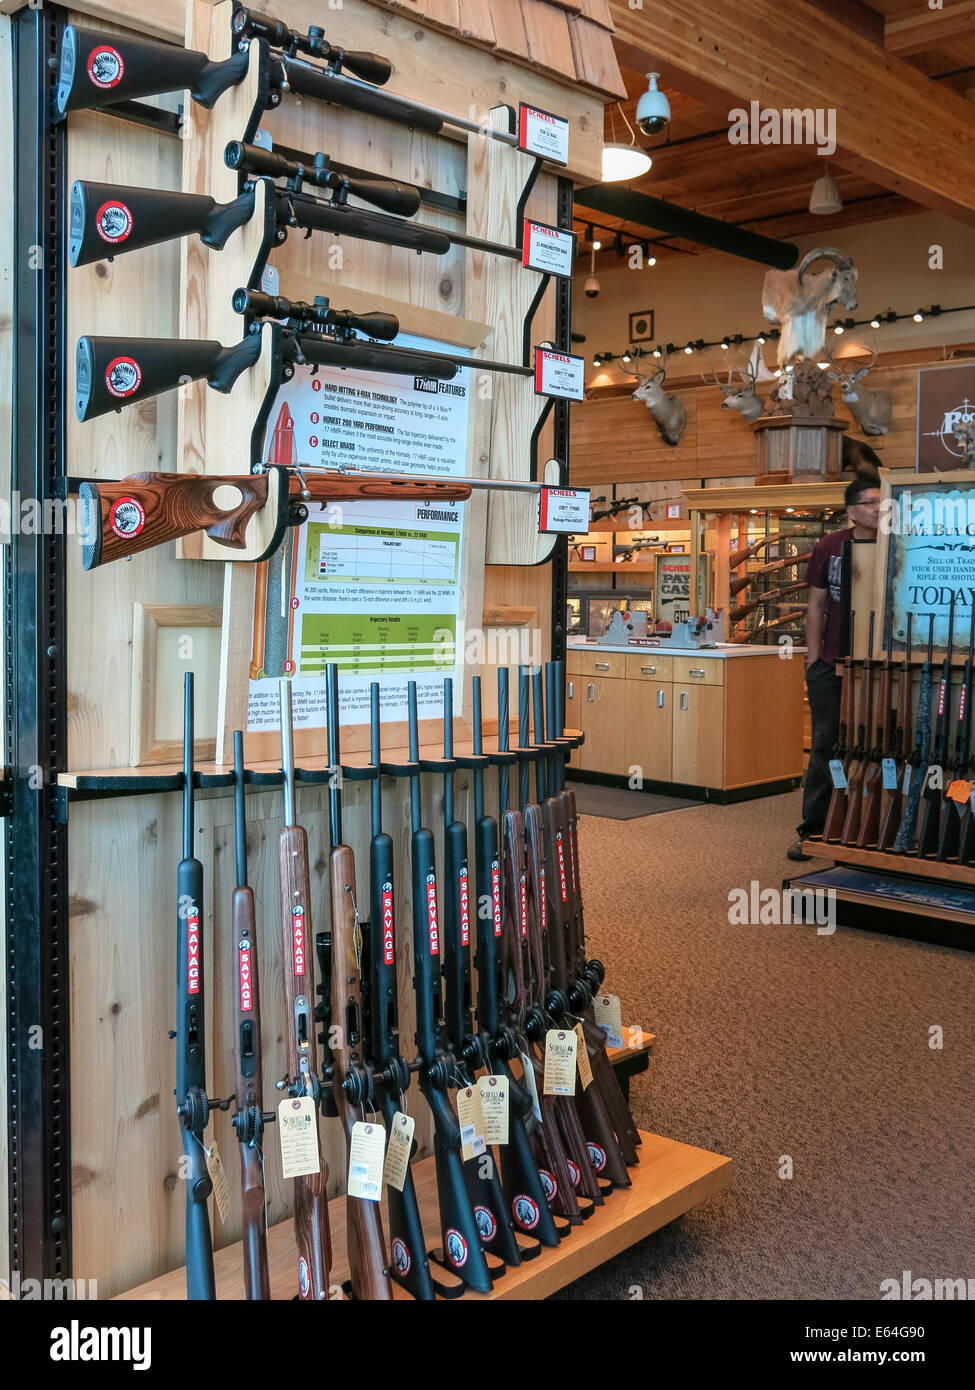 Furniture stores great falls mt - Hunting Rifles Scheels Sporting Goods Store Great Falls Montana Usa Stock